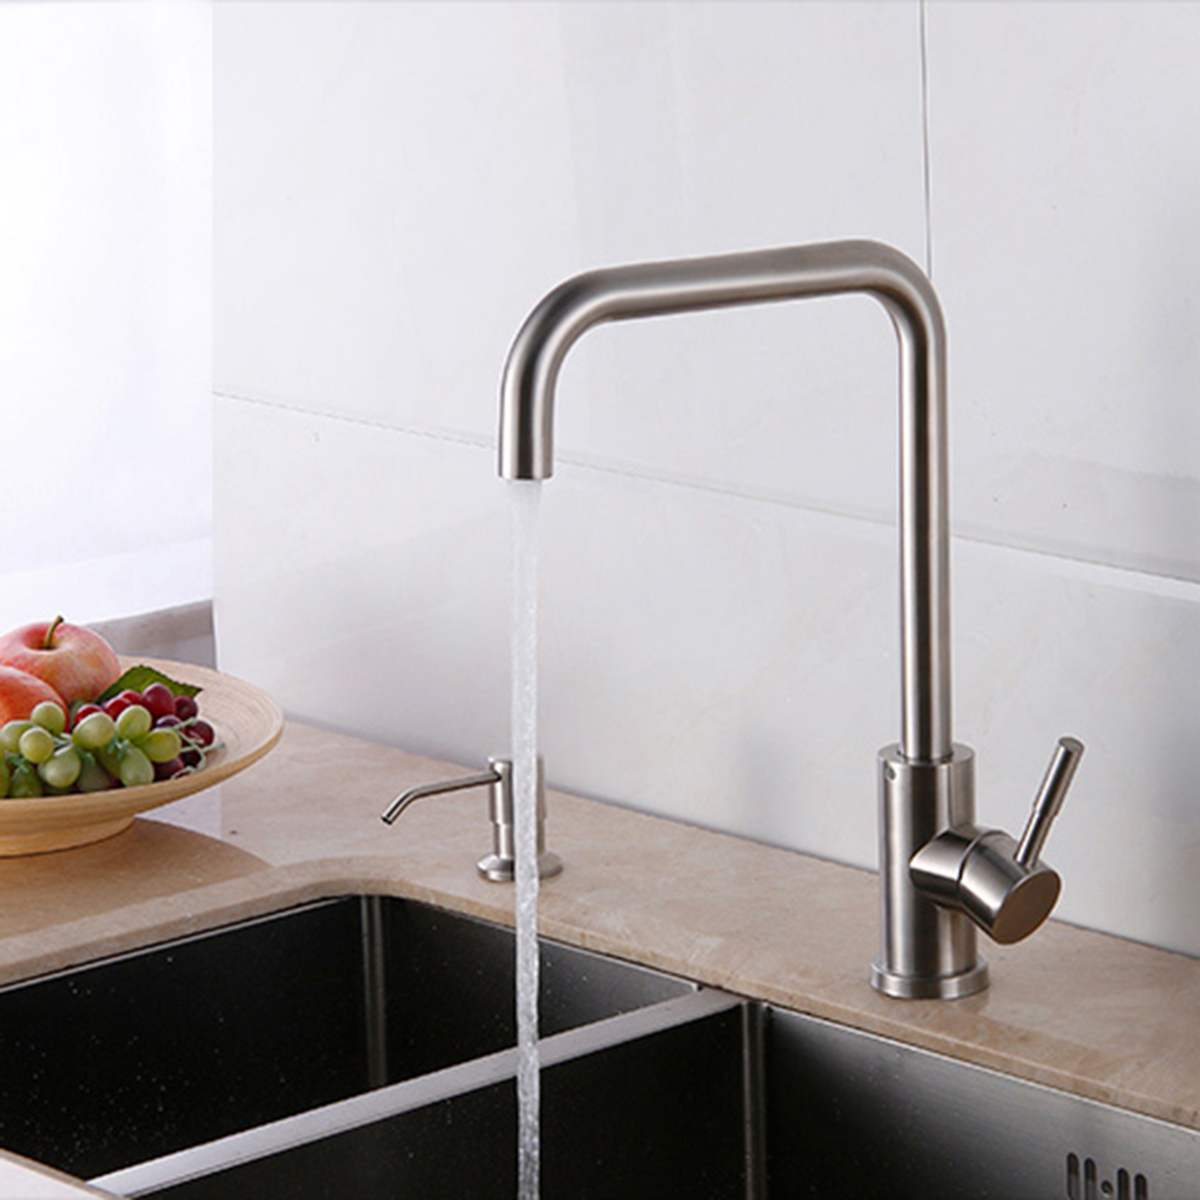 Stainless steel Kitchen Faucets Single Handle Pull Out ceramic Single Hole Handle 360 Degree Water Mixer Tap Mixer hot cold Tap micoe pull style hot and cold water kitchen faucet mixer single handle single hole modern style chrome tap 360 swivel m hc103